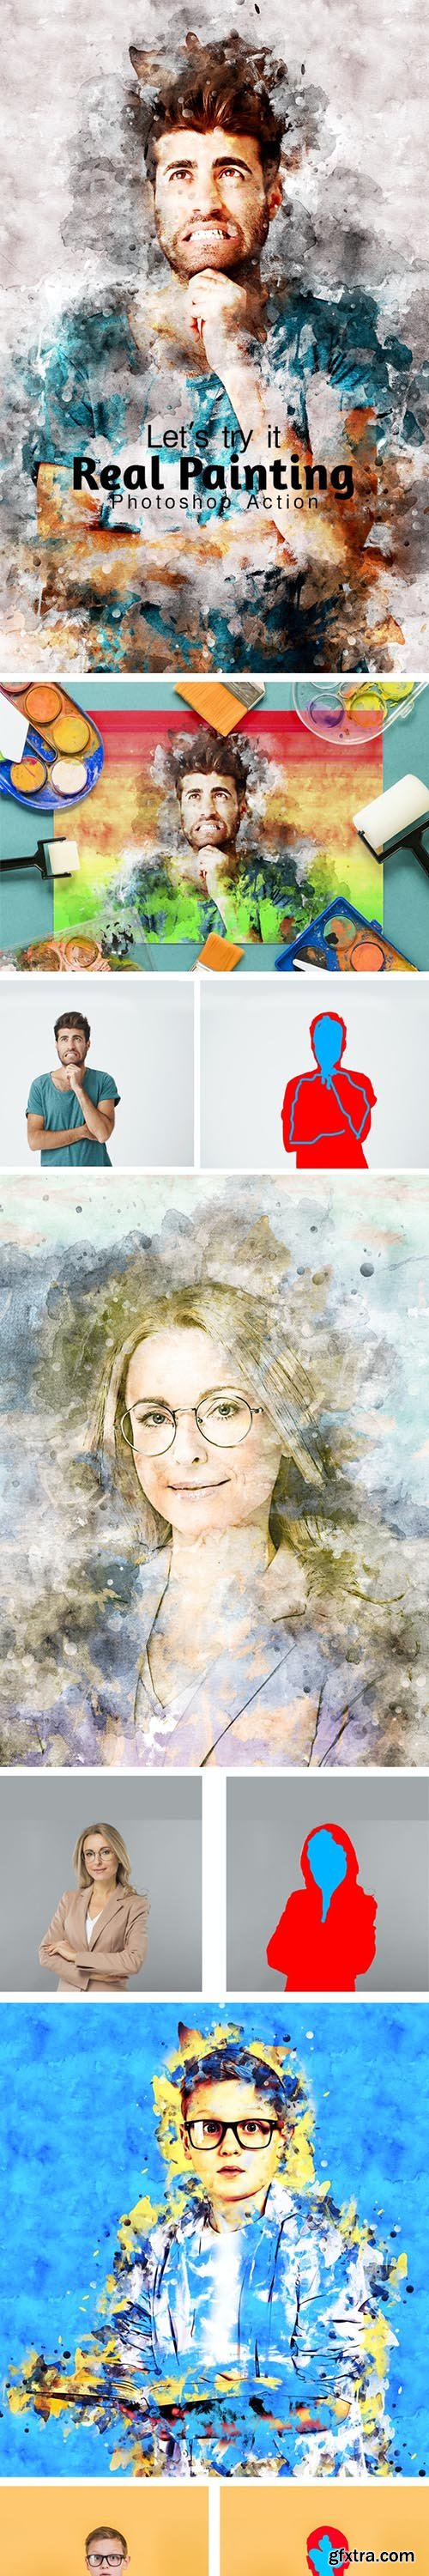 GraphicRiver - Real Painting Photoshop Action 28819341